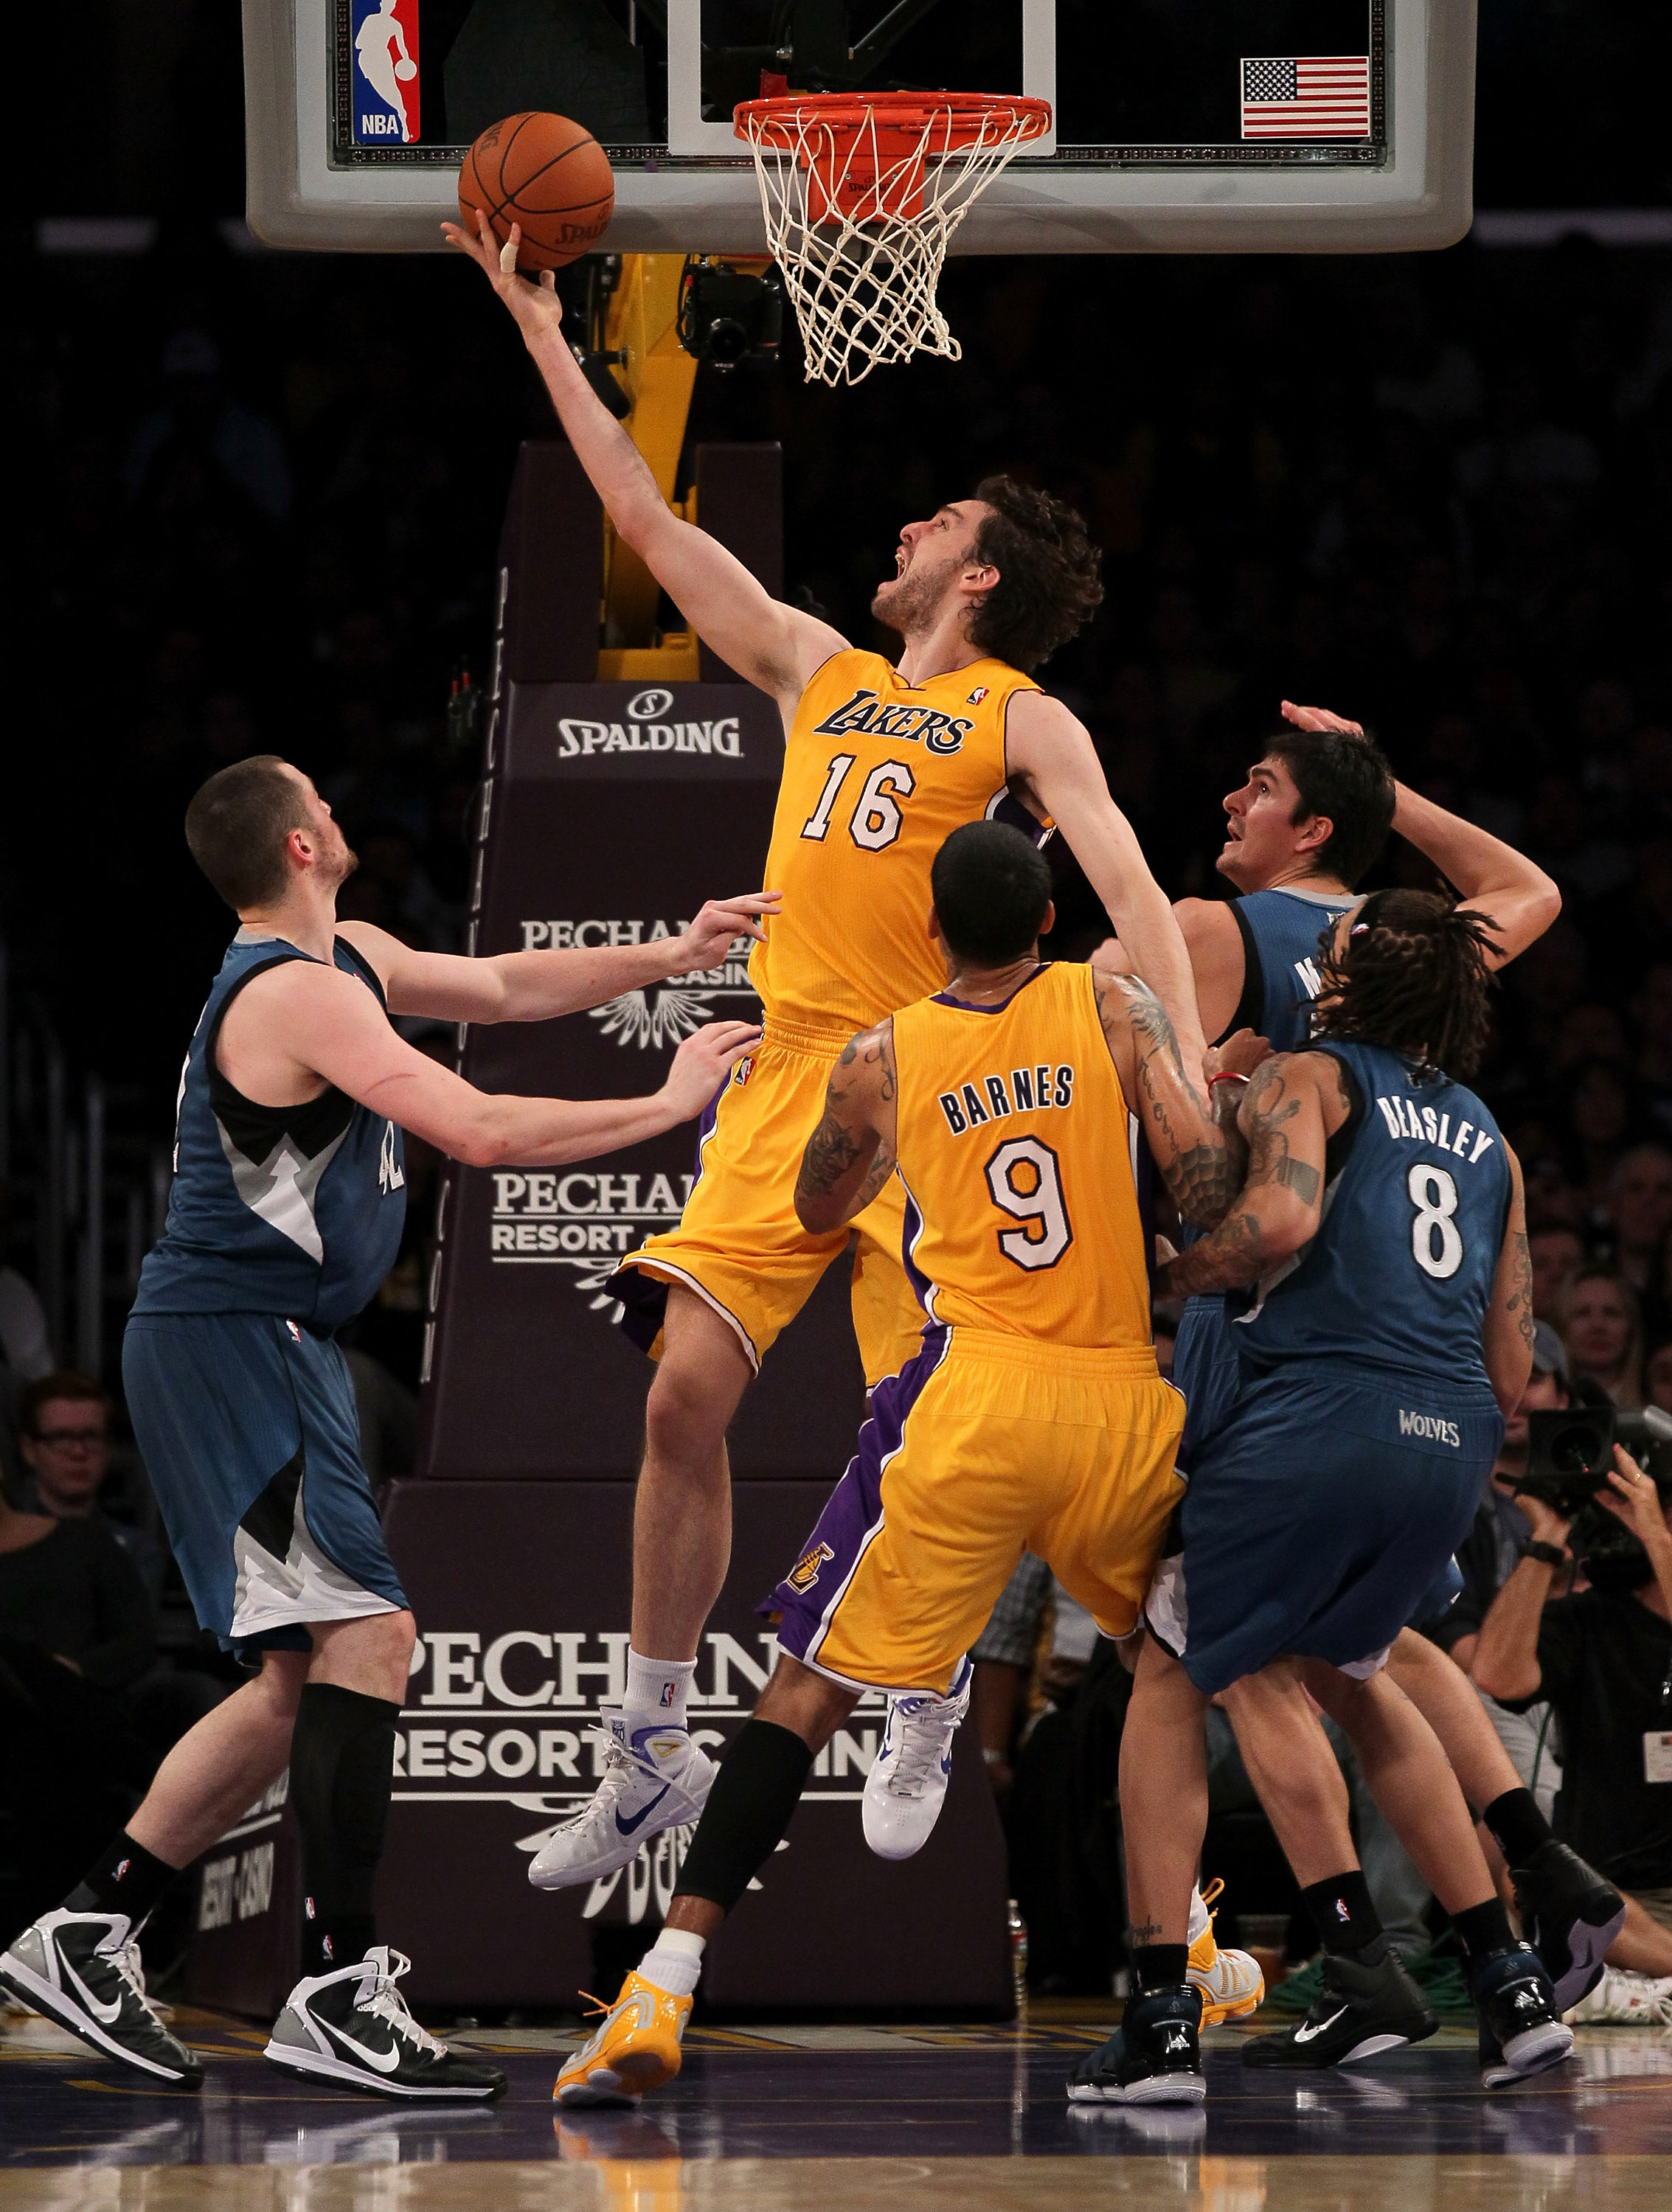 LOS ANGELES, CA - NOVEMBER 09:  Pau Gasol #16 of the Los Angeles Lakers shoots between Darko Milicic #31 and Kevin Love #42 of the Minnesota Timberwolves at Staples Center on November 9, 2010 in Los Angeles, California.   NOTE TO USER: User expressly ackn